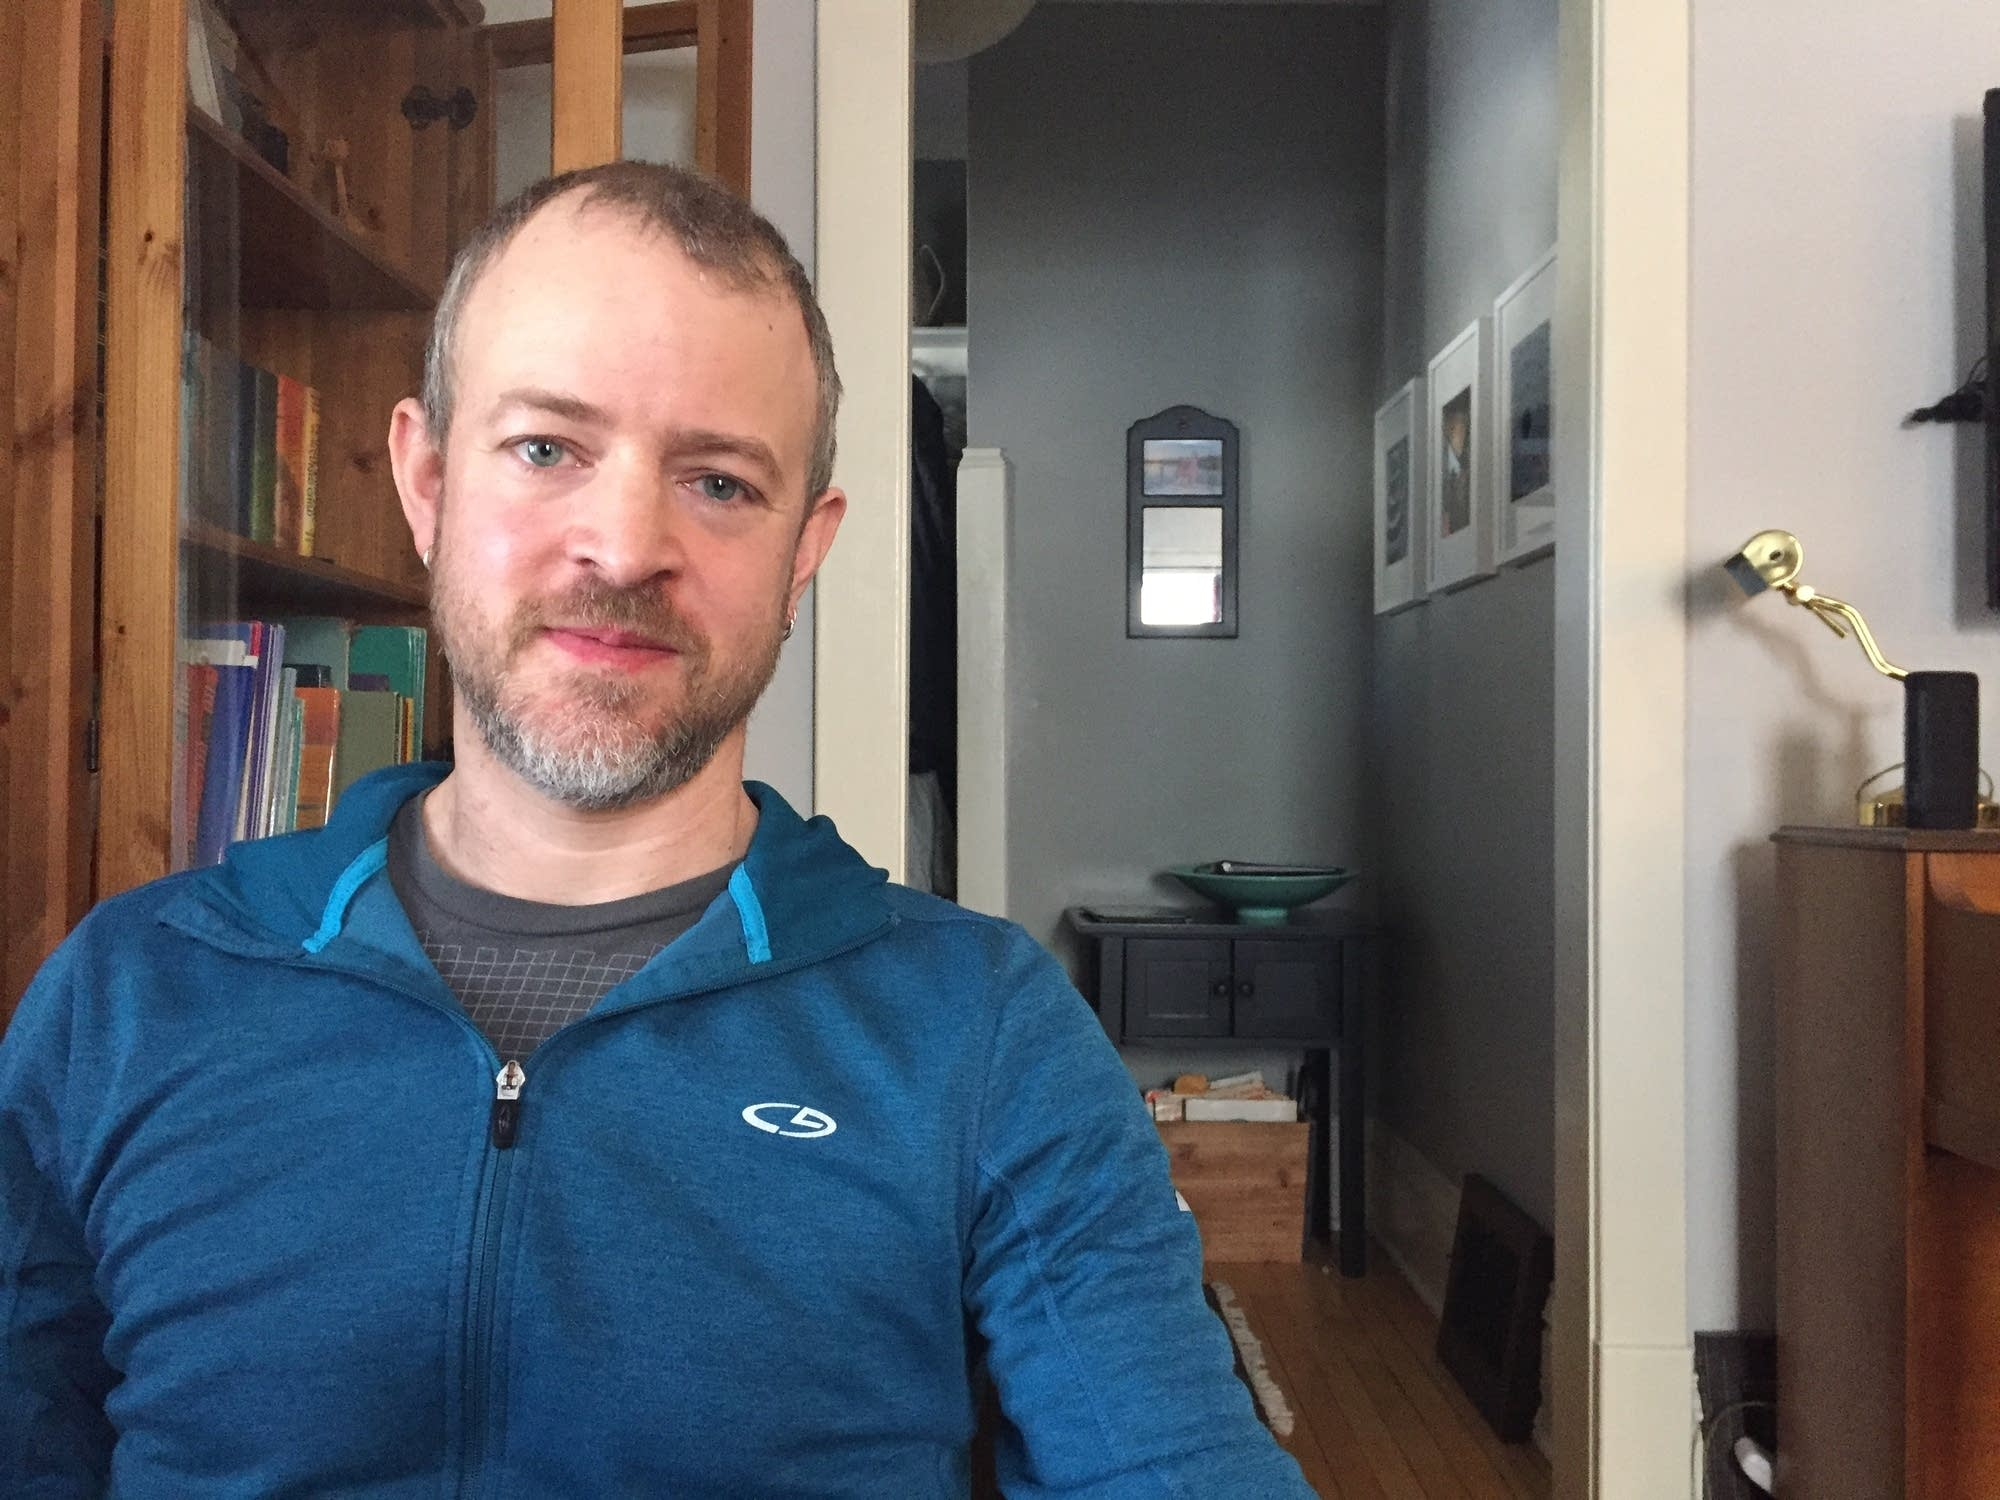 Nate Saul orked at the Guthrie Theater for 15 years as a carpenter